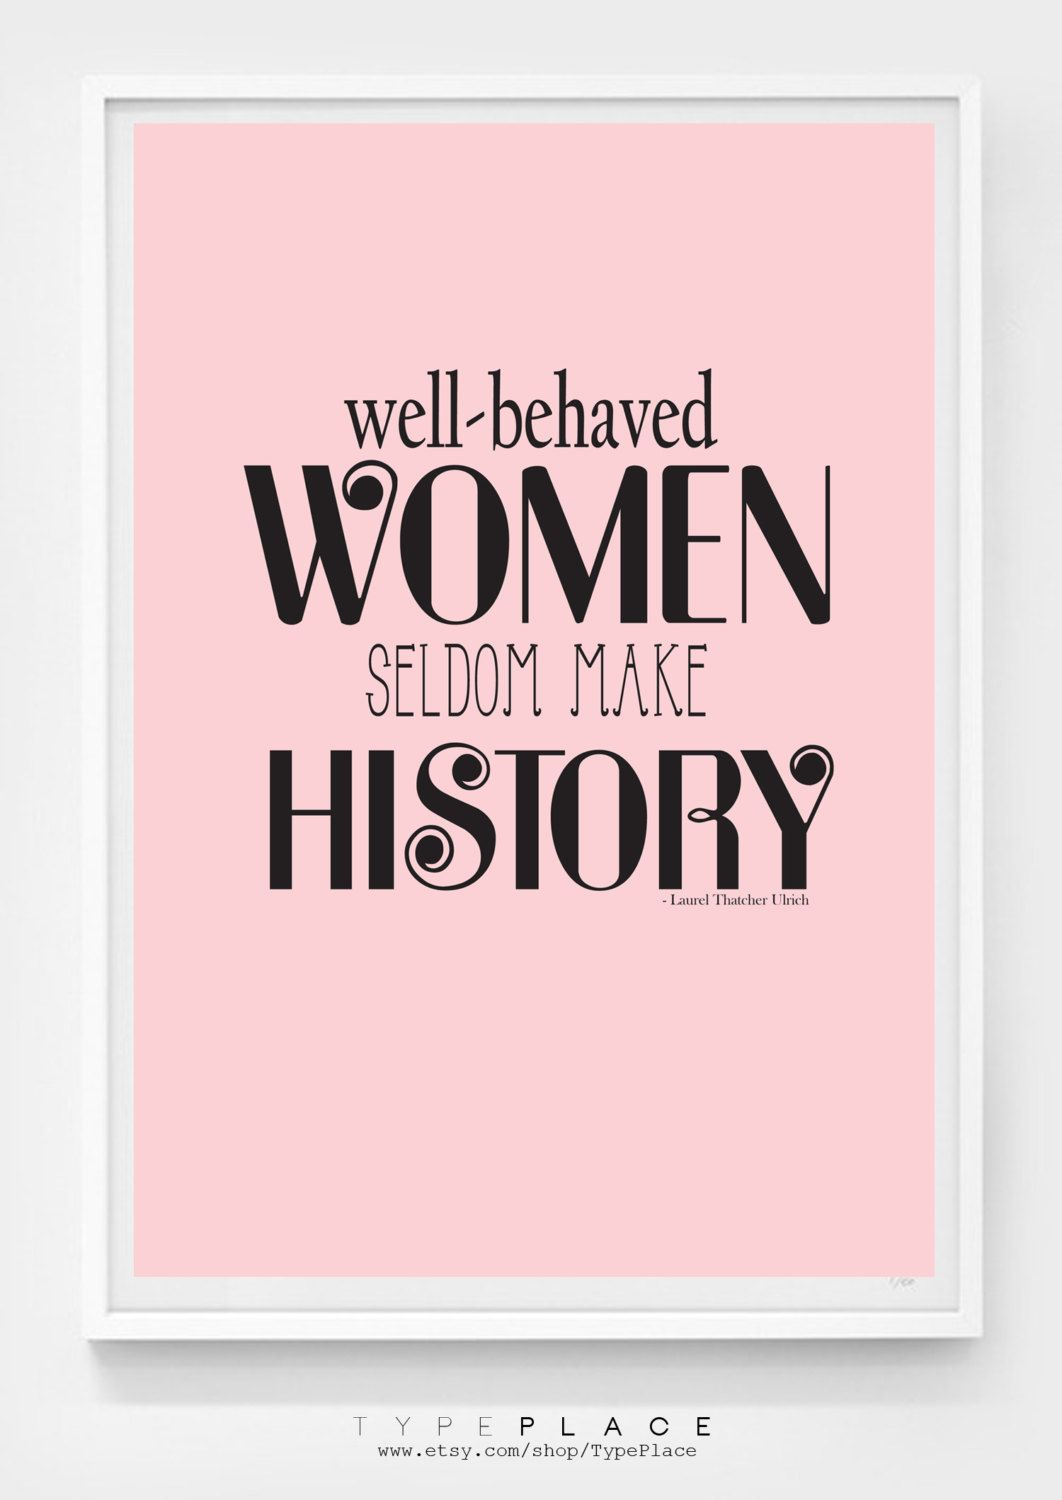 Funny Inspirational Quotes For Women: Well Behaved Women - Inspirational Quote